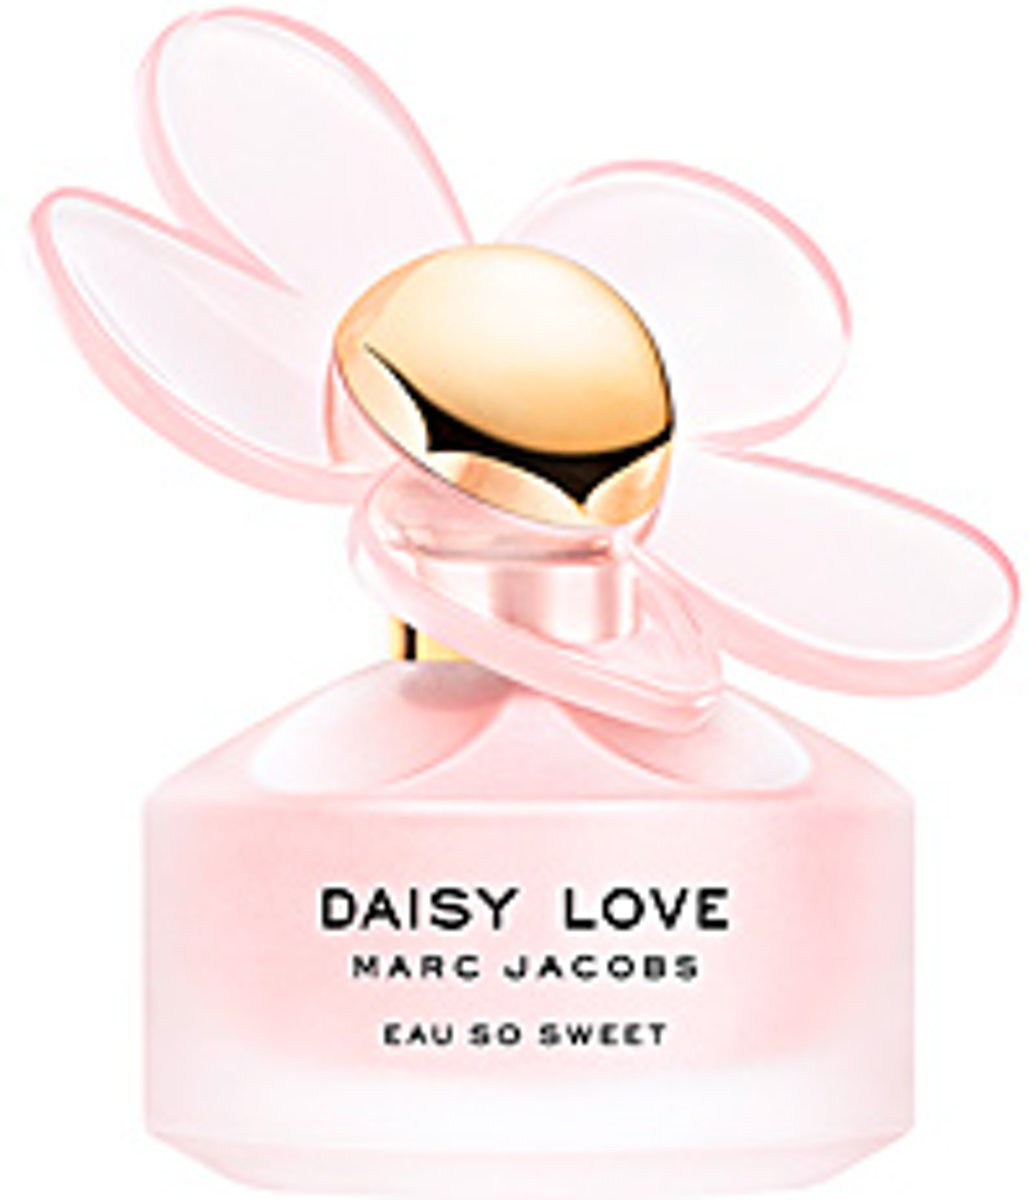 Marc Jacobs DAISY LOVE EAU SO SWEET edt spray 50 ml